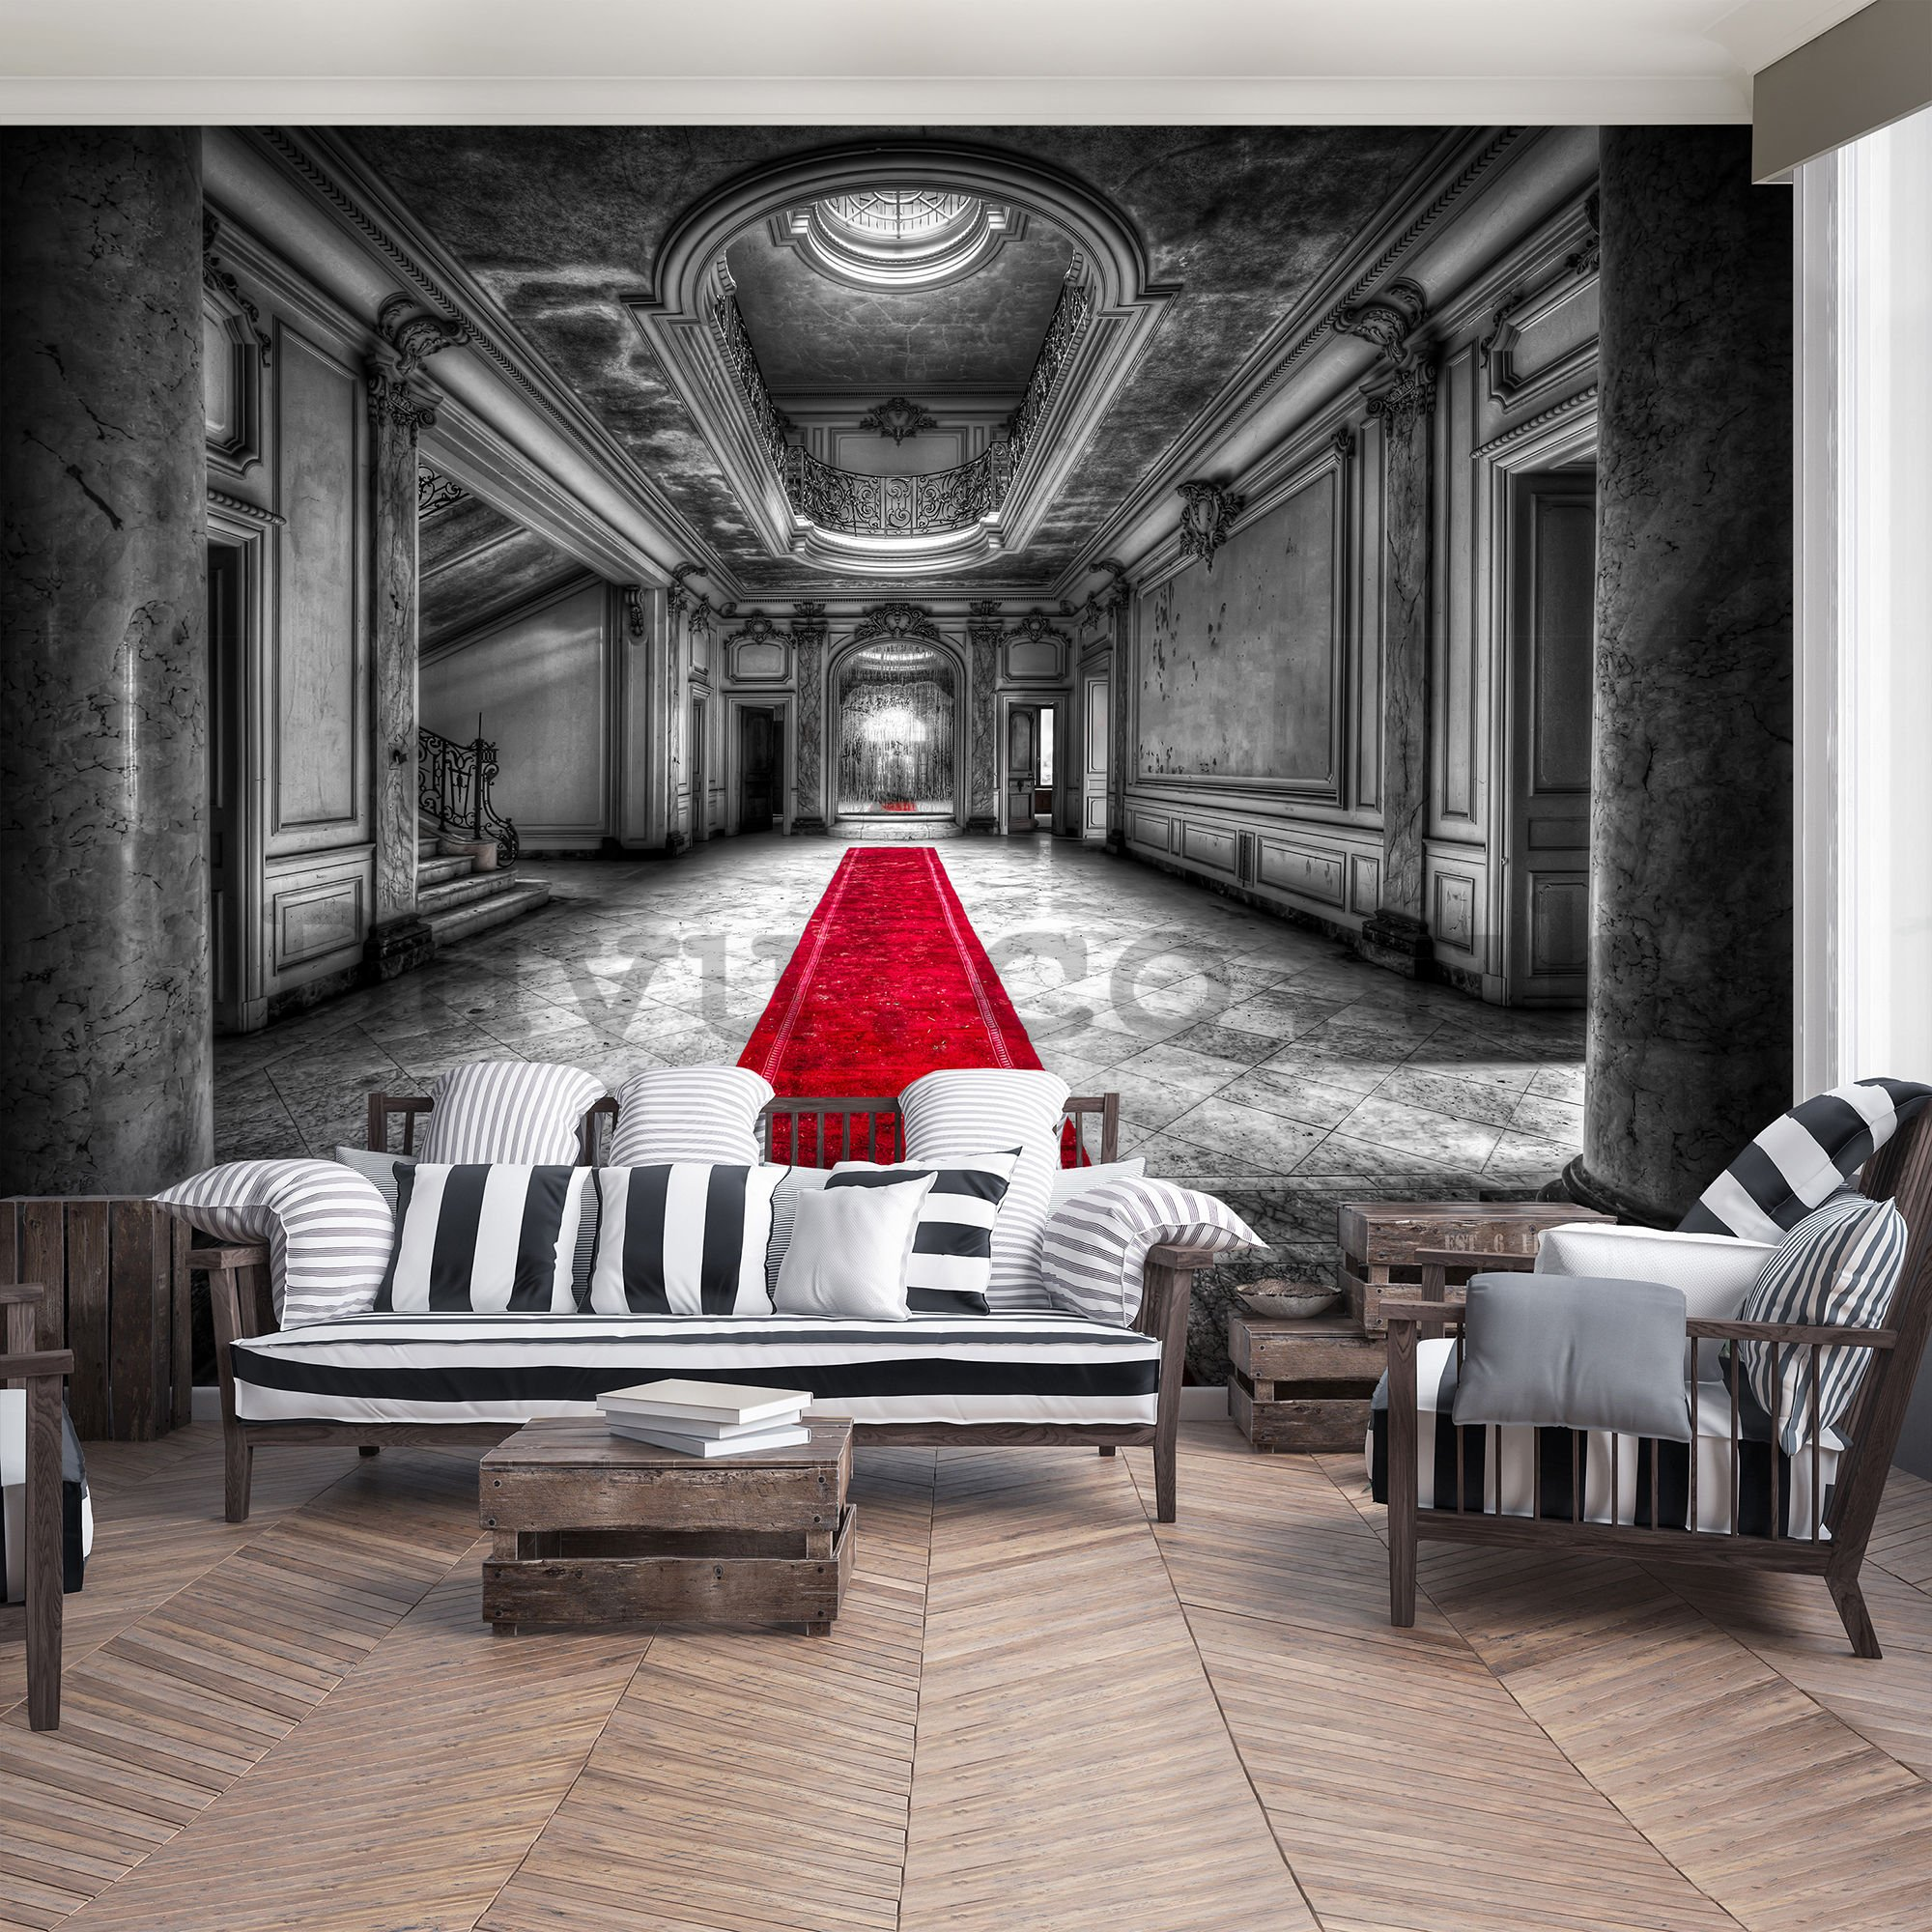 Wall mural: Hallway at the castle - 184x254 cm